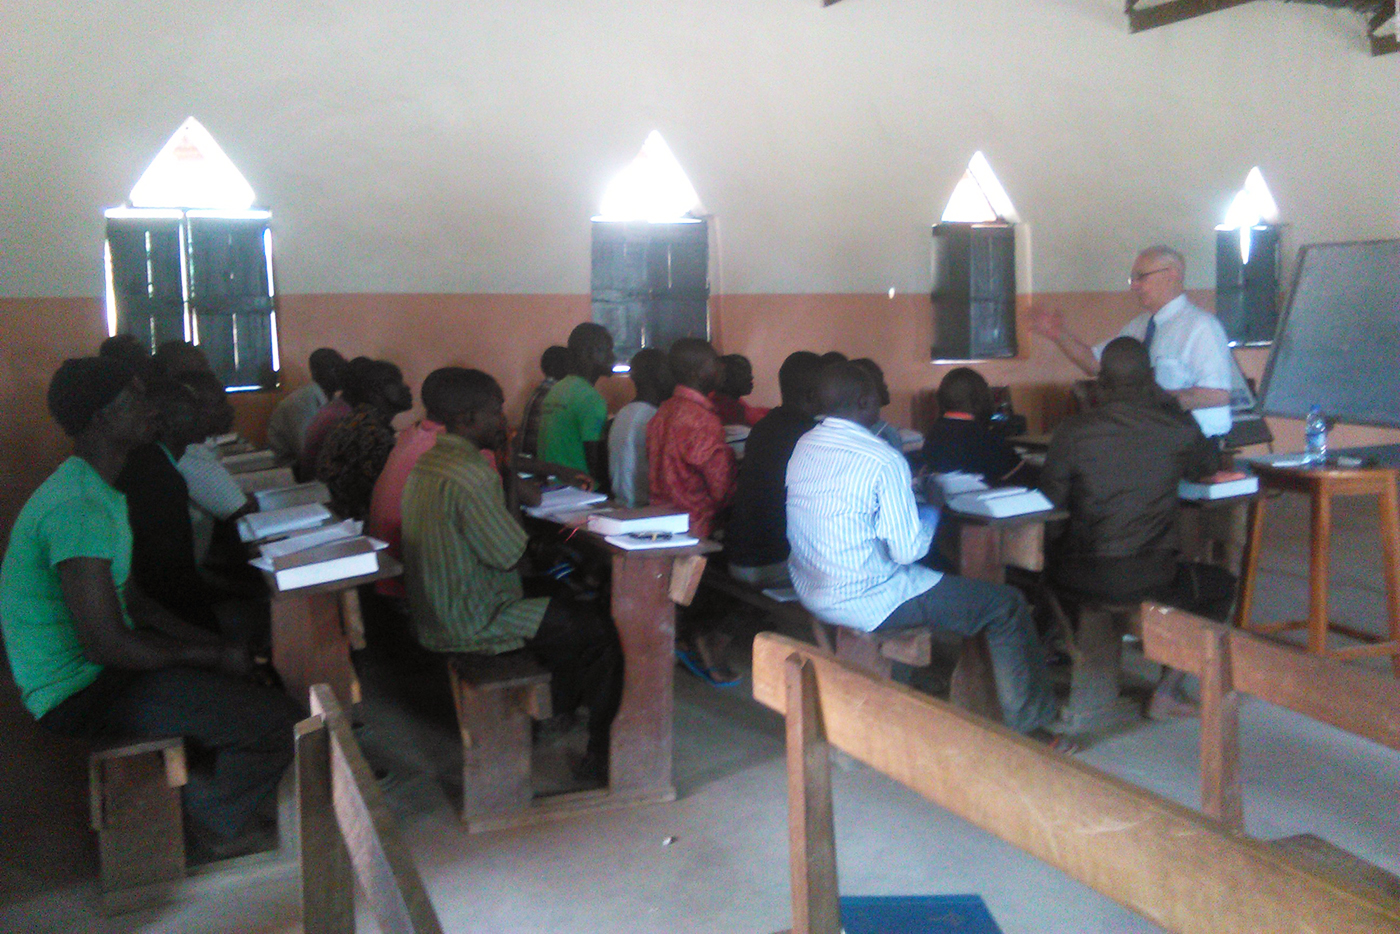 Students at the Sudan seminary attend their first day of class